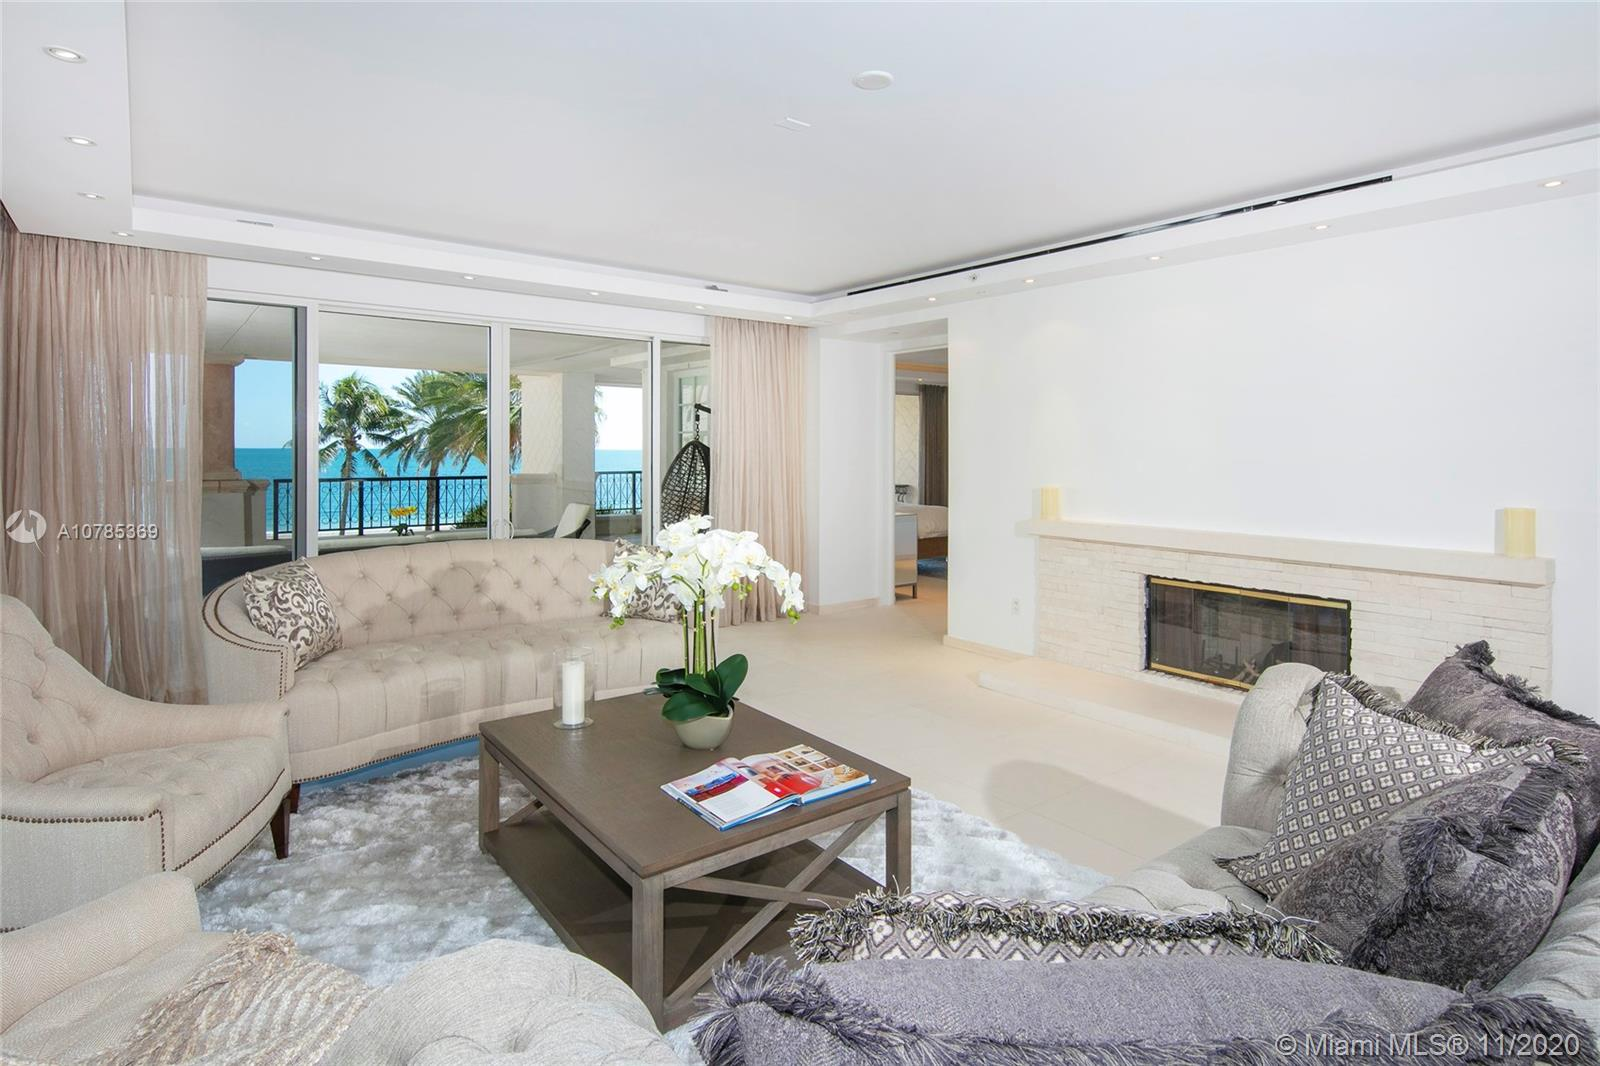 7621 Fisher Island Dr # 7621, Miami Beach, Florida 33109, 5 Bedrooms Bedrooms, ,6 BathroomsBathrooms,Residential Lease,For Rent,7621 Fisher Island Dr # 7621,A10785369